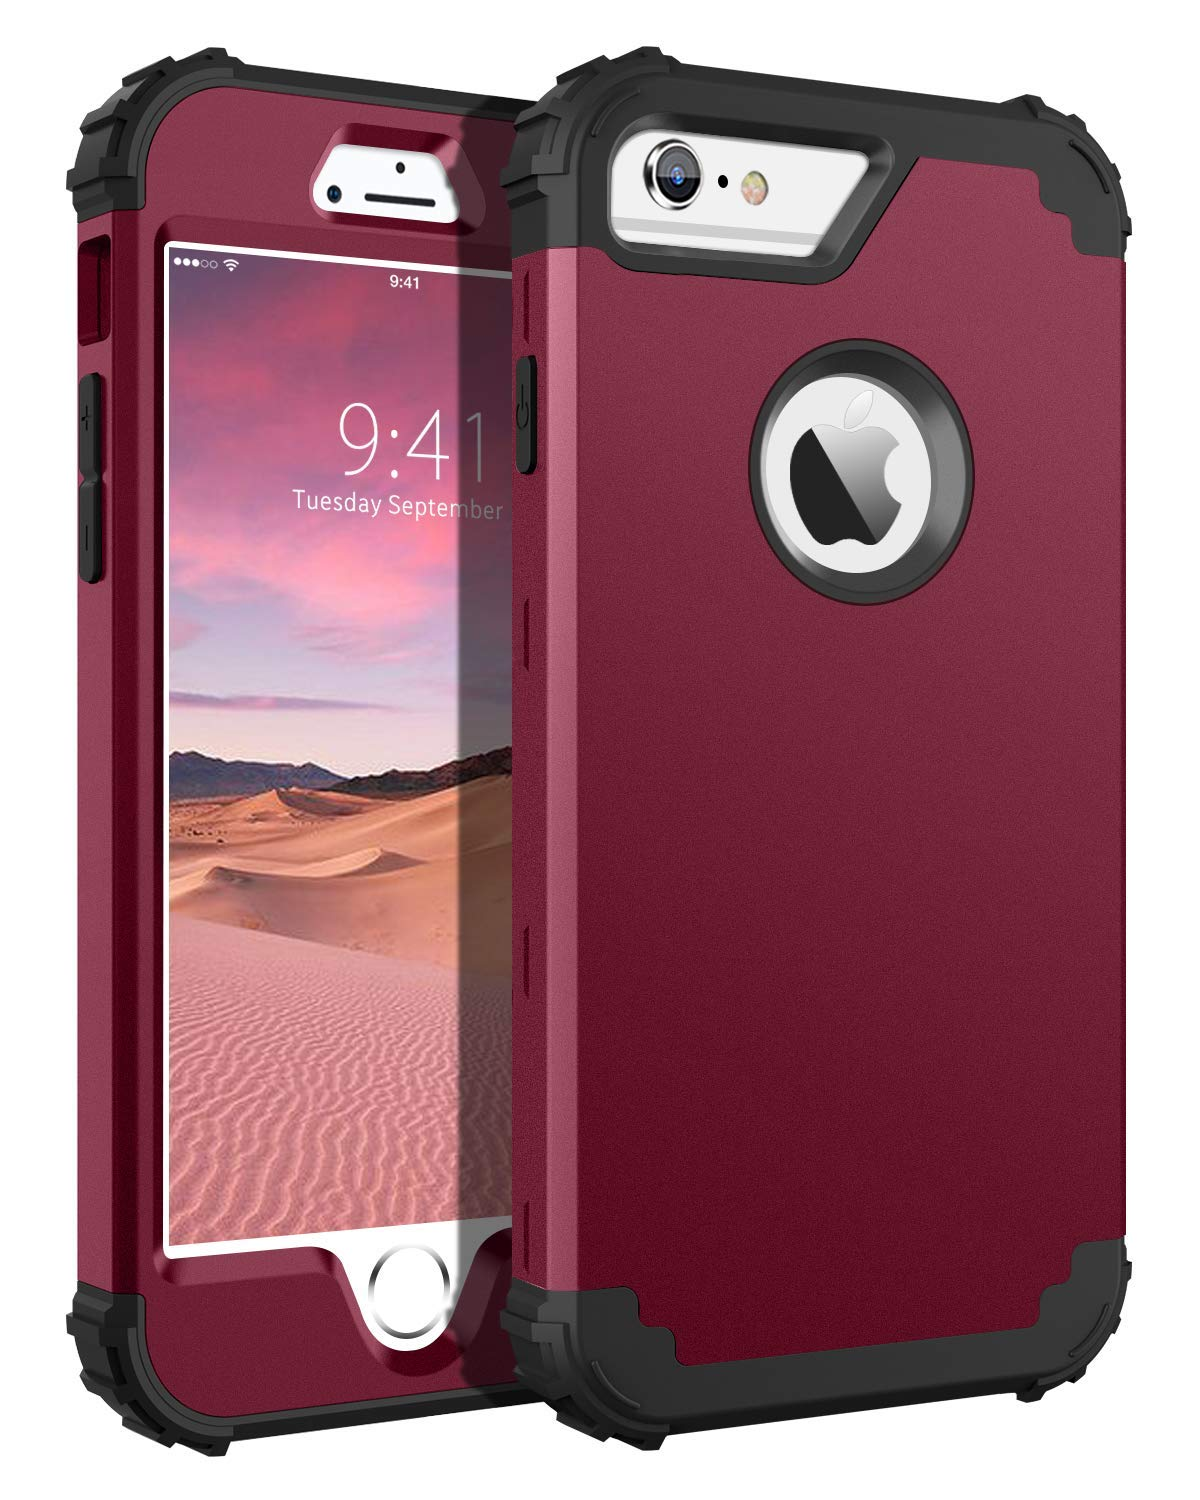 iPhone 6S Plus Case, iPhone 6 Plus Case, BENTOBEN Heavy Duty Shockproof 3 in 1 Slim Hybrid Hard PC Soft Silicone Bumper Protective Phone Case Cover ...